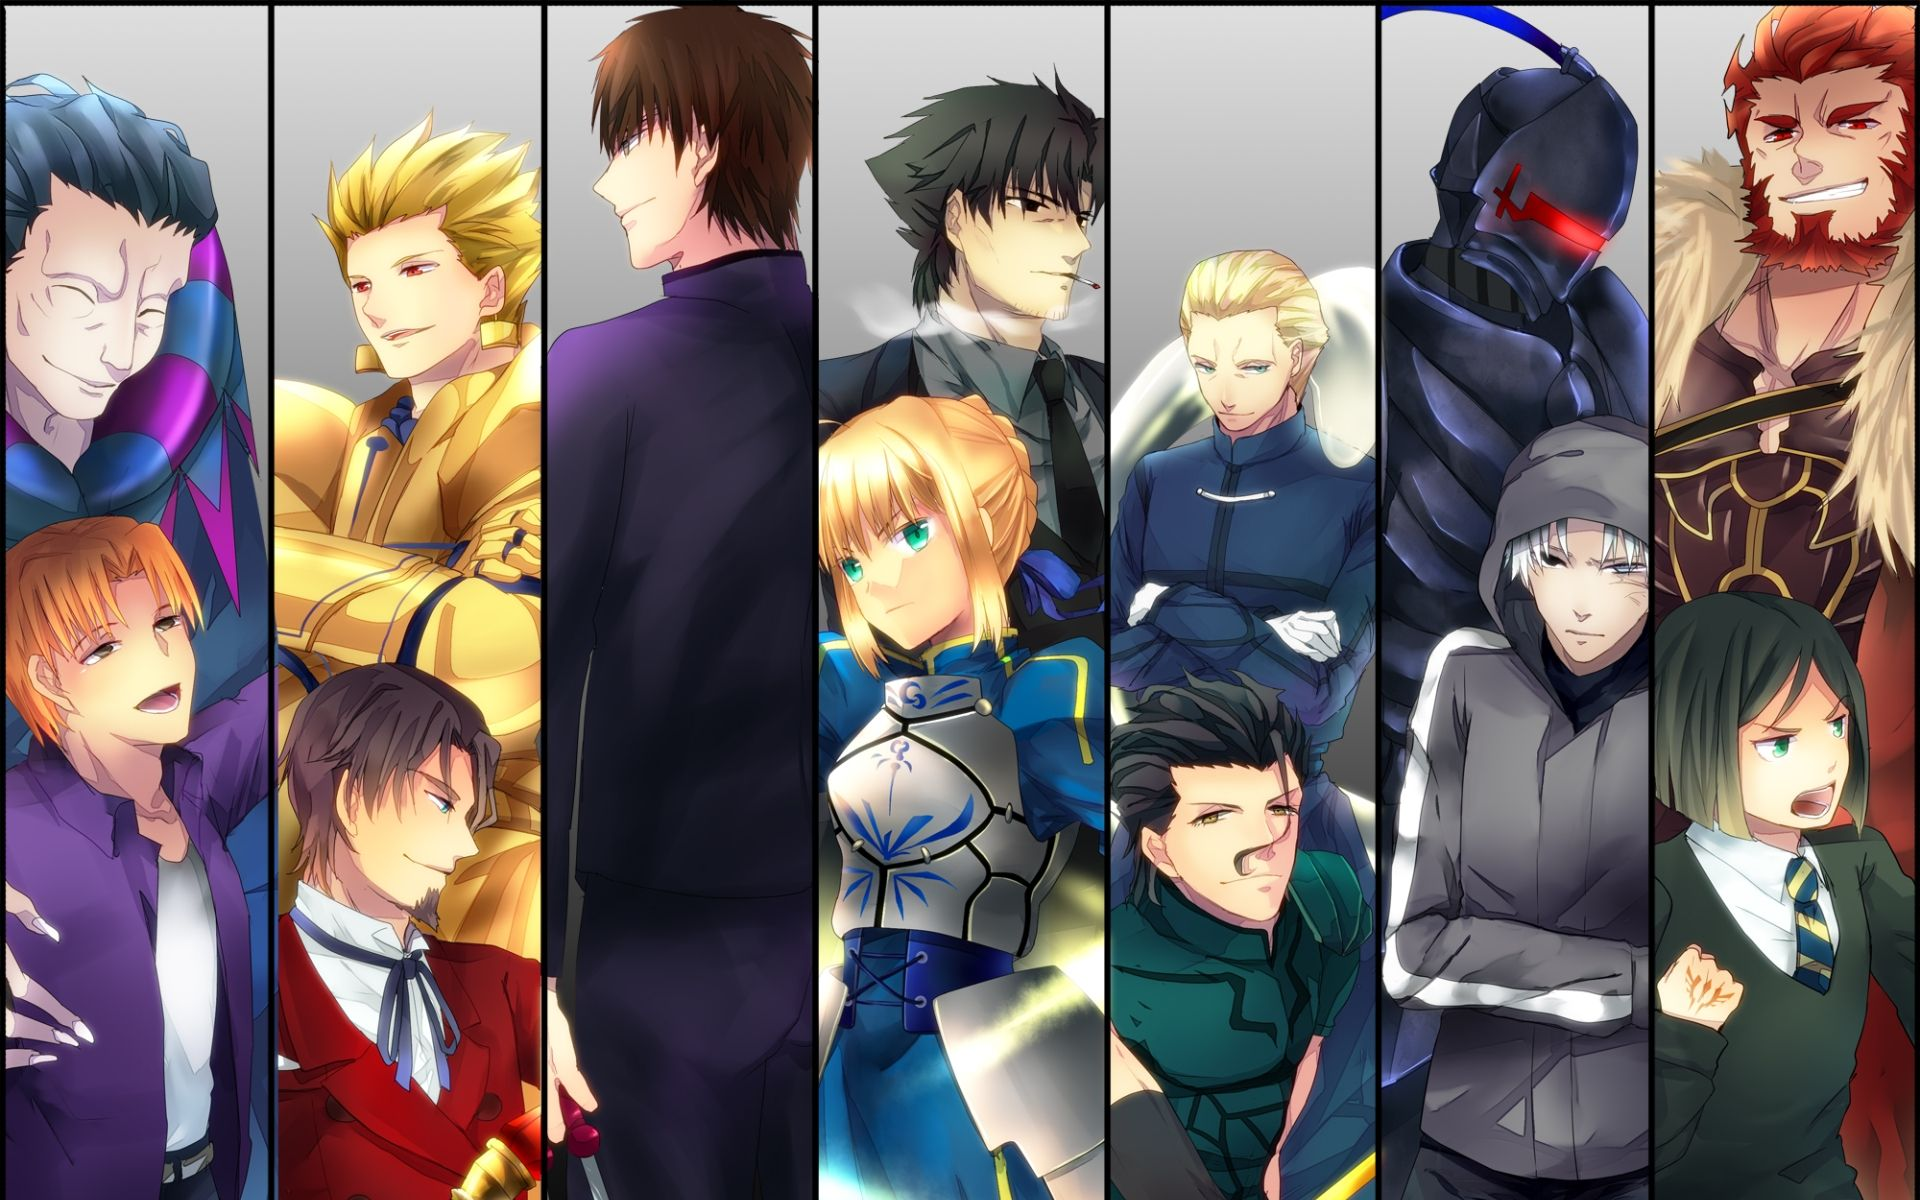 Fate Zero Anime Wallpaper